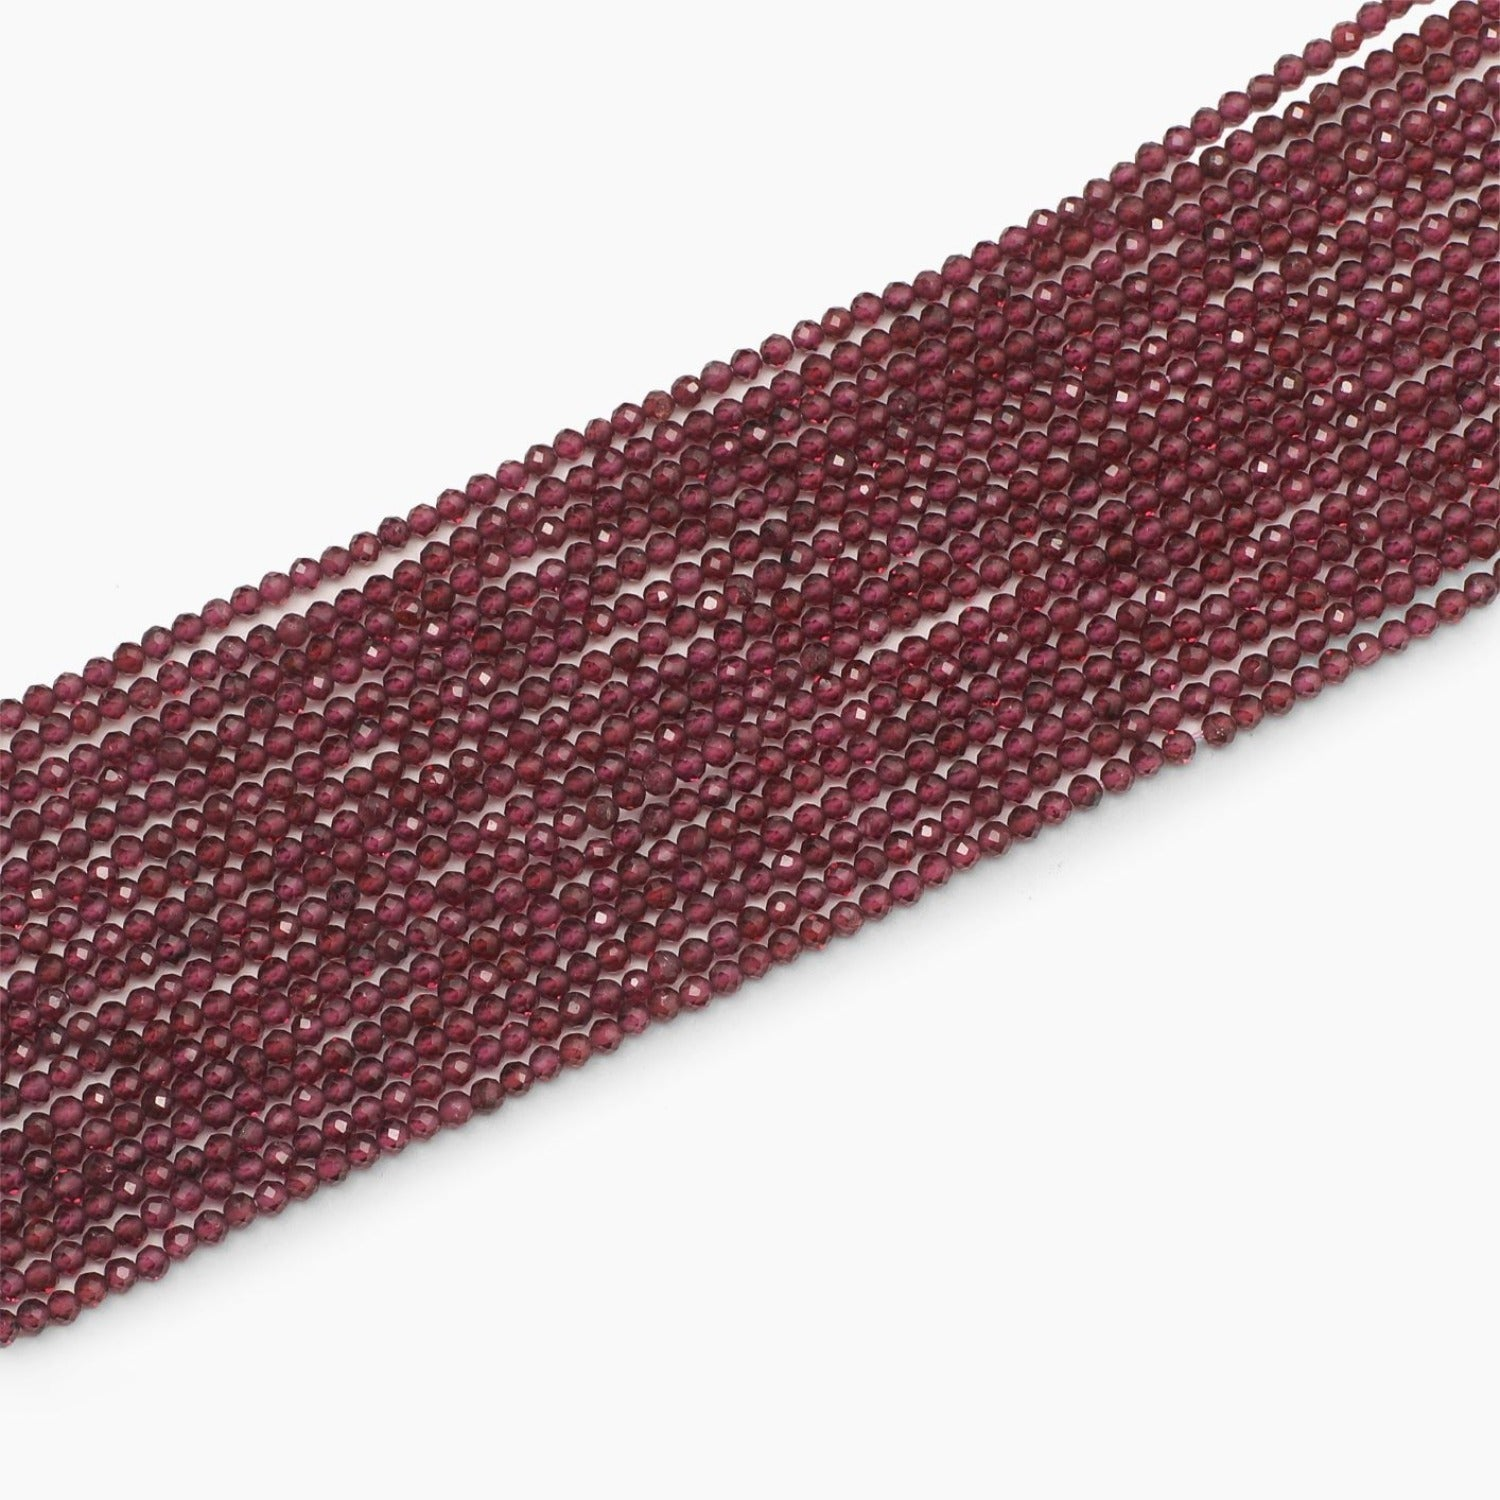 Rhodolite Garnet Diamond Cut  Faceted Beads- Sold Per Strand